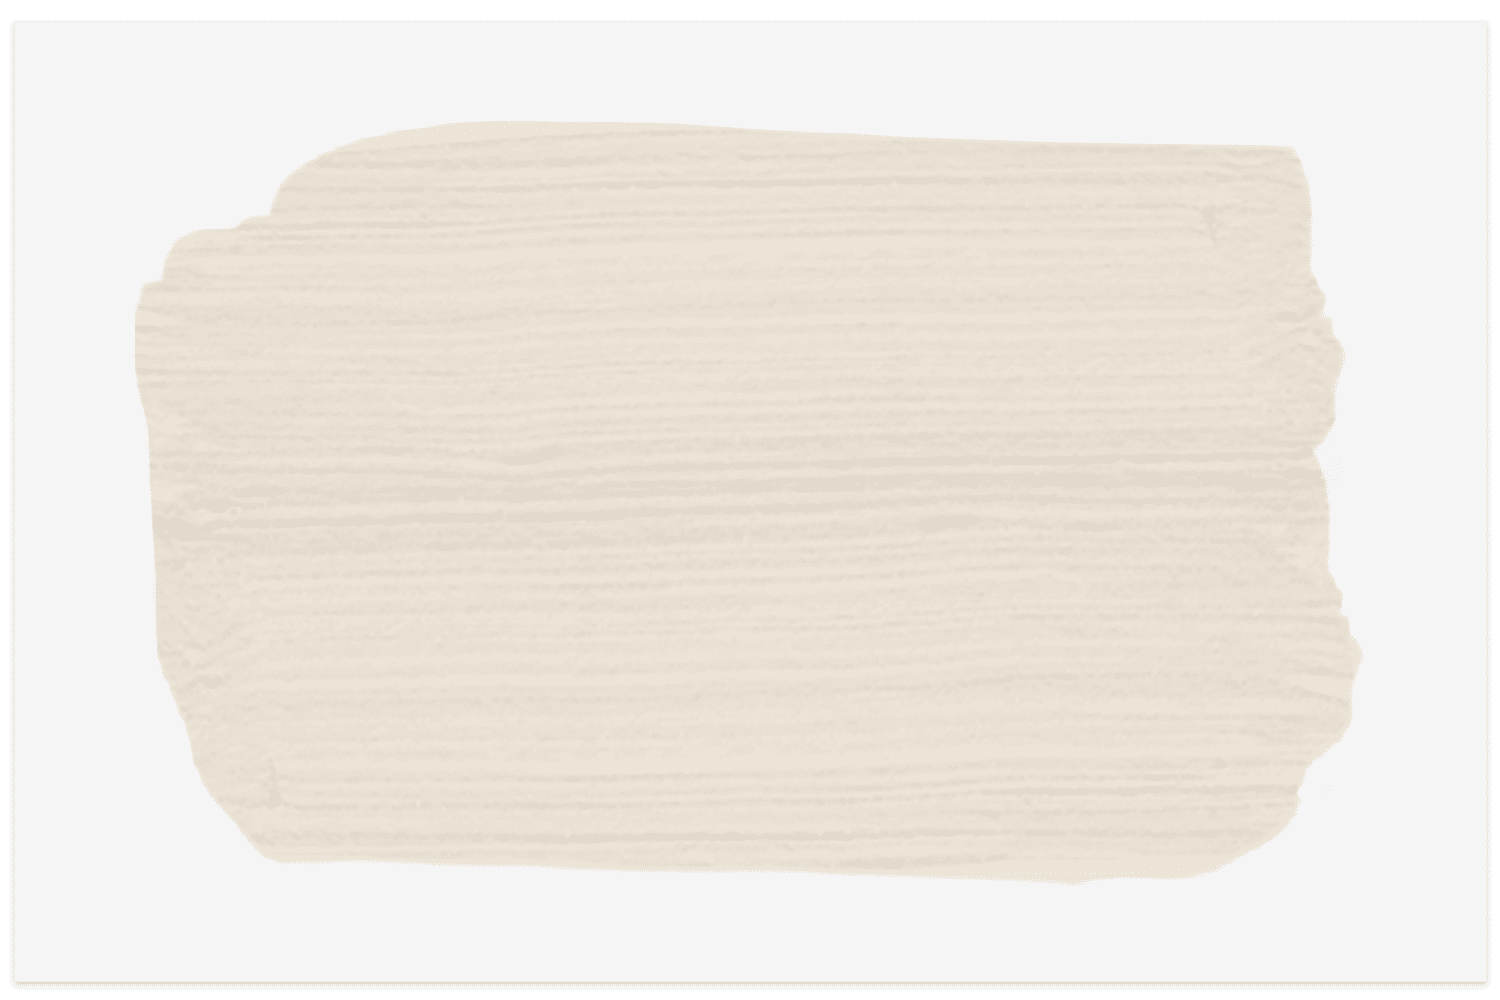 Sherwin-Williams swatch in Ivory Lace